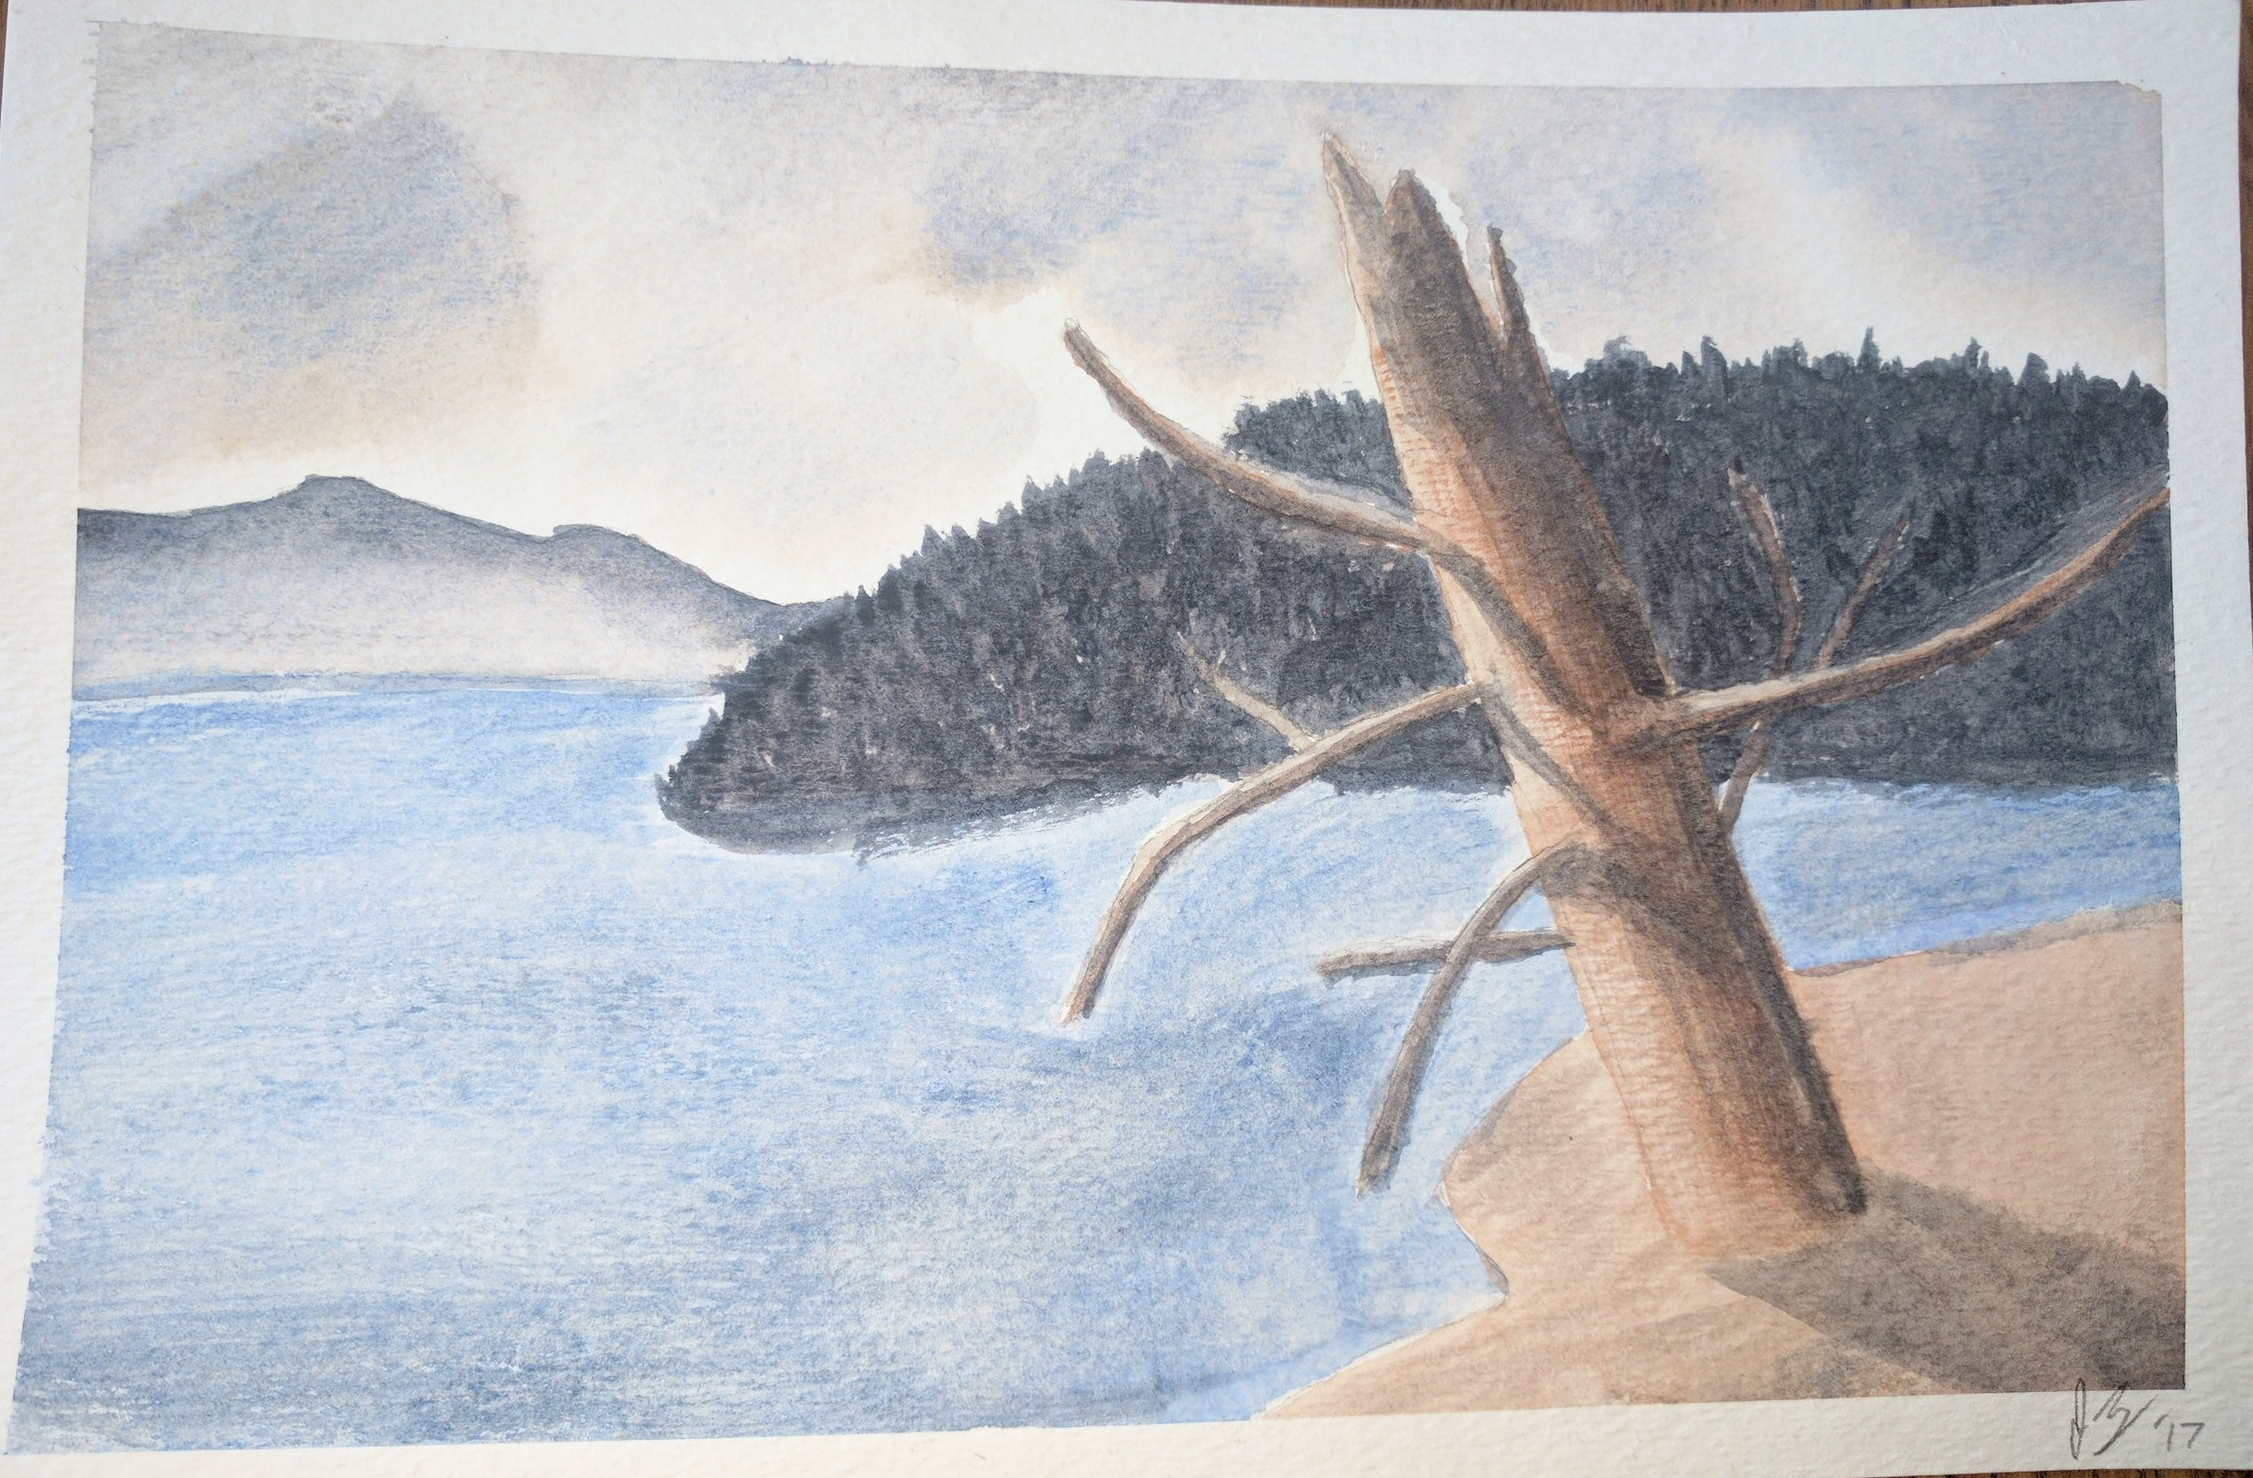 March, 2017  This was another painting I attempted based on an original in a watercolor tutorial book. I like the somber feel and muted tones in this one, and think the dead tree turned out halfway decent.